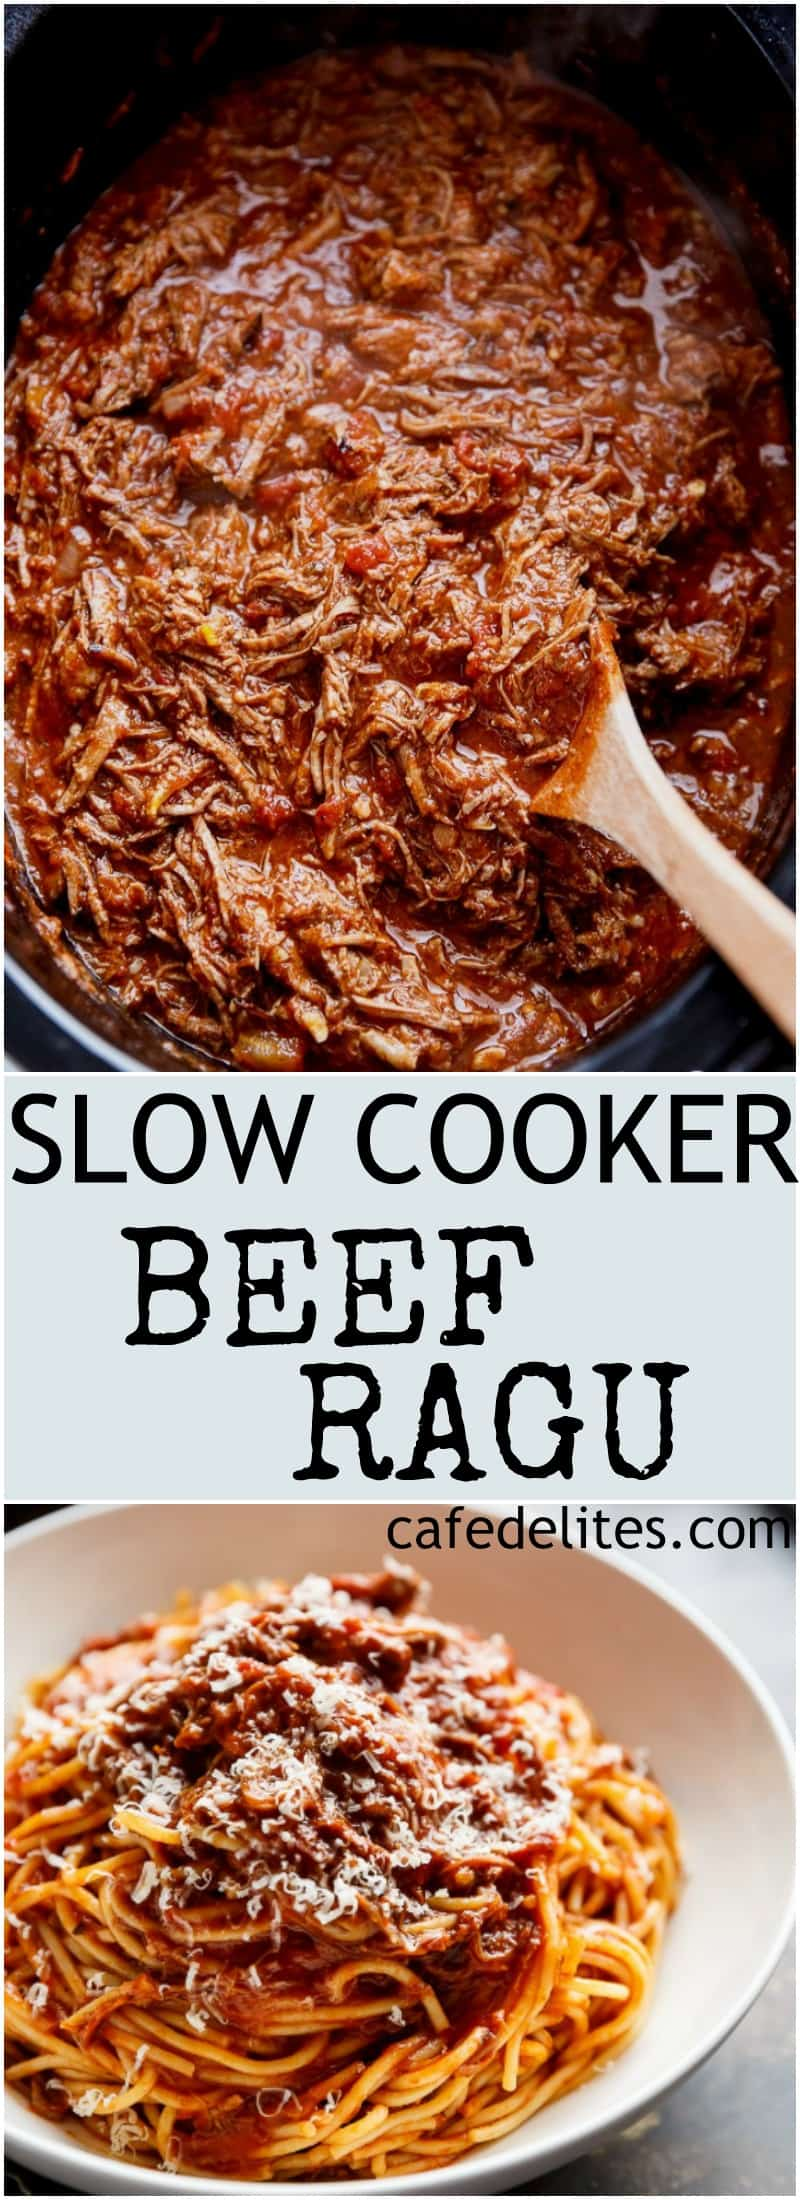 Slow Cooker Beef Ragu is a rich and tender, fall-apart tomato beef sauce. With all the magic happening in your slow cooker, come home to a satisfying, ready-made home cooked dinner! | https://cafedelites.com